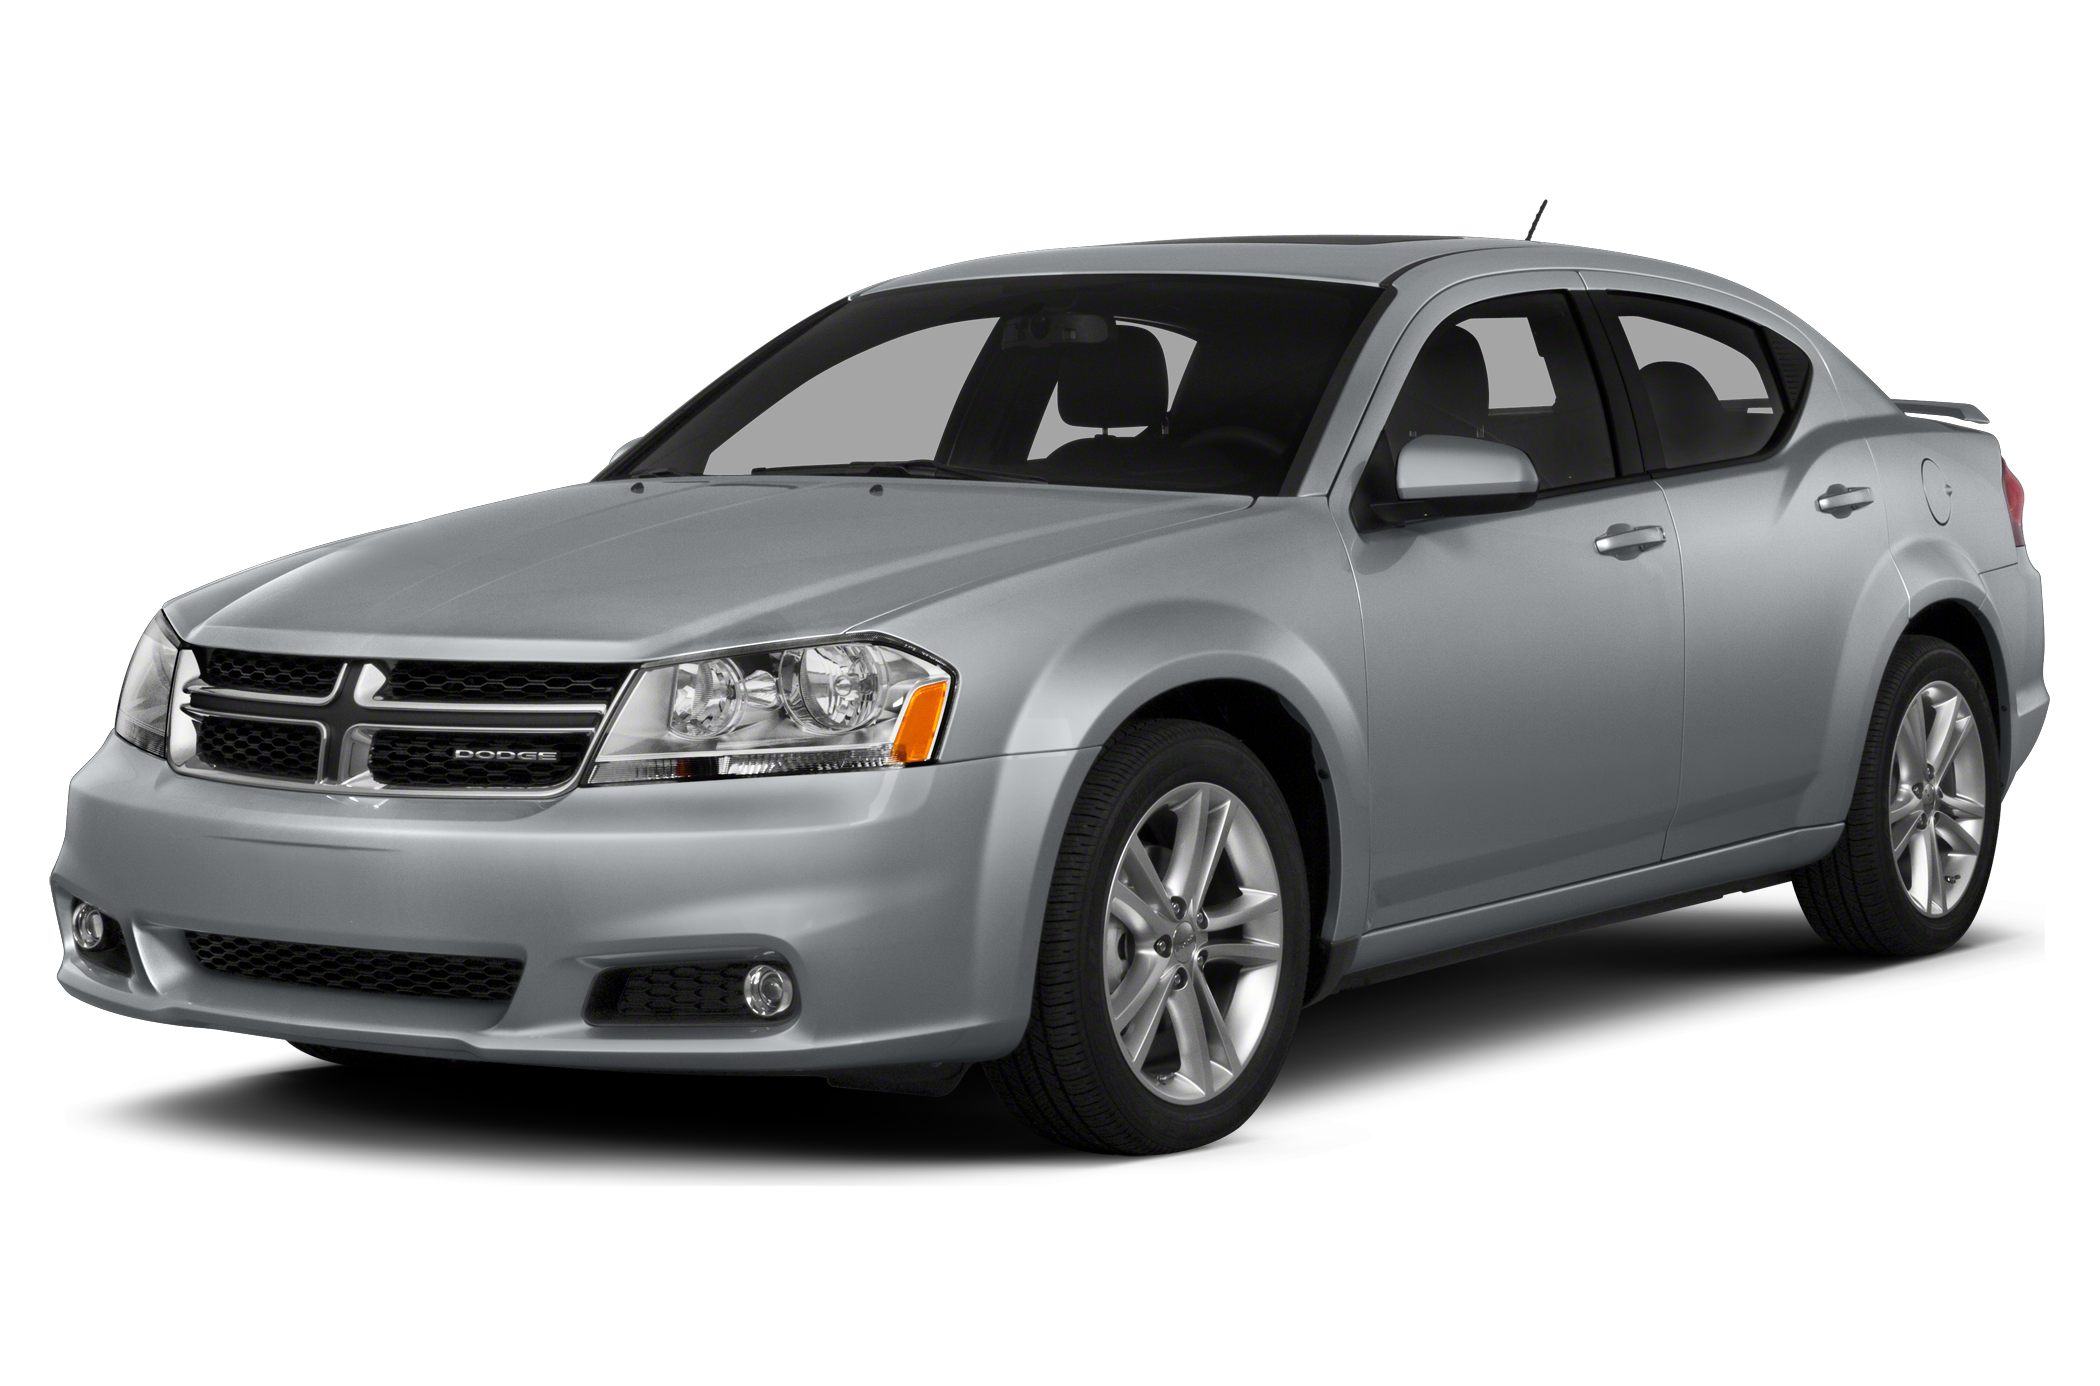 2017 Dodge Avenger Car Photos Catalog 2019